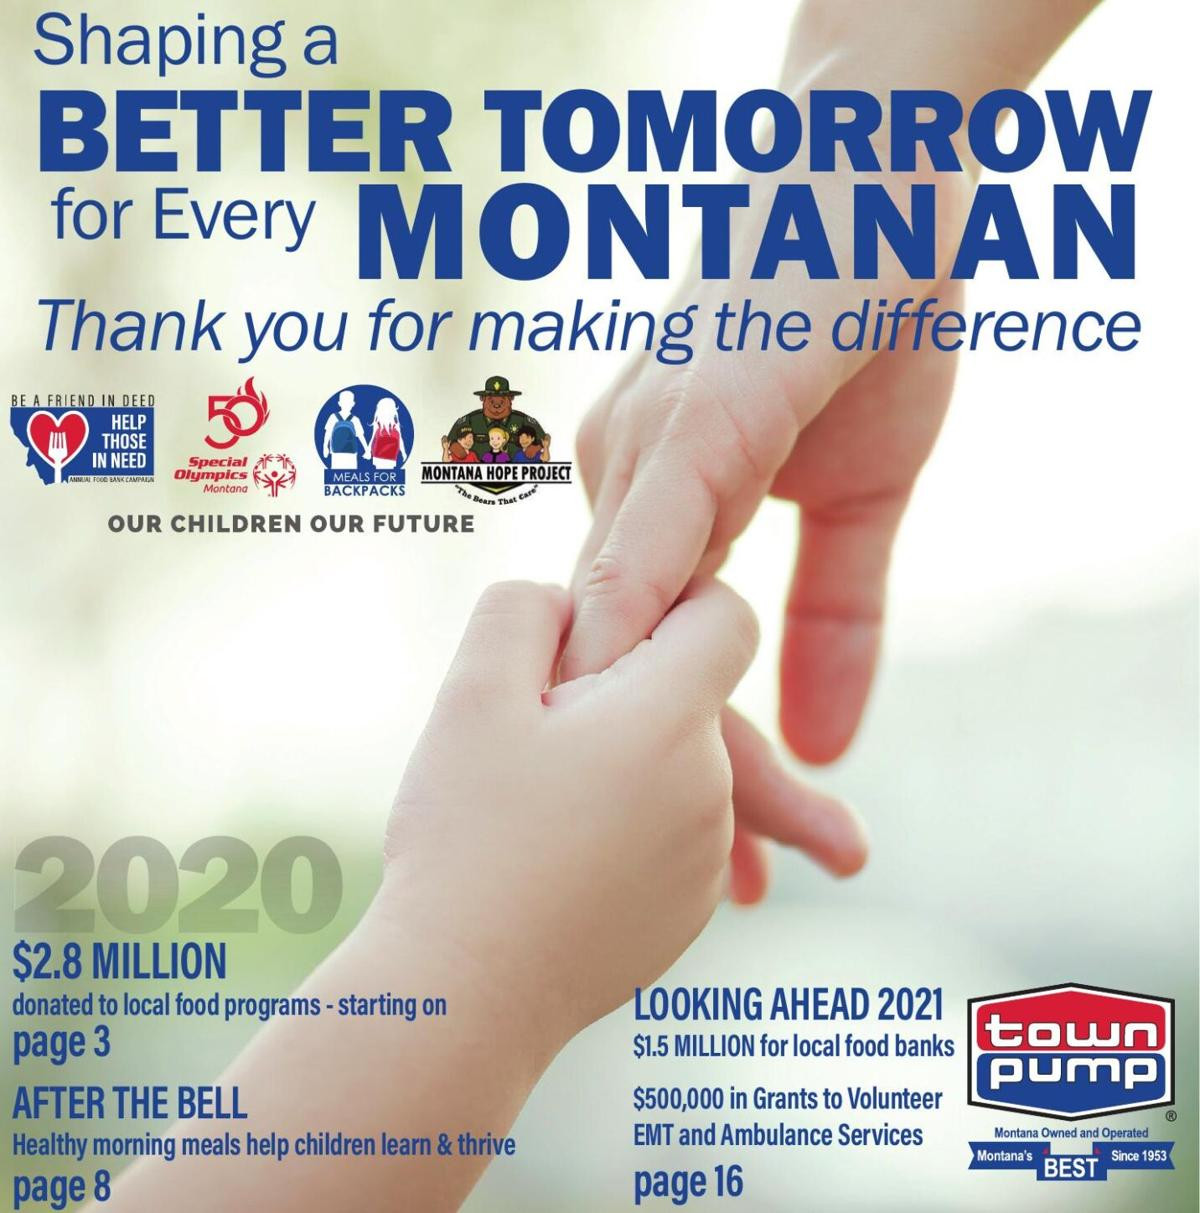 Town Pump - Shaping a Better Tomorrow for Every Montanan